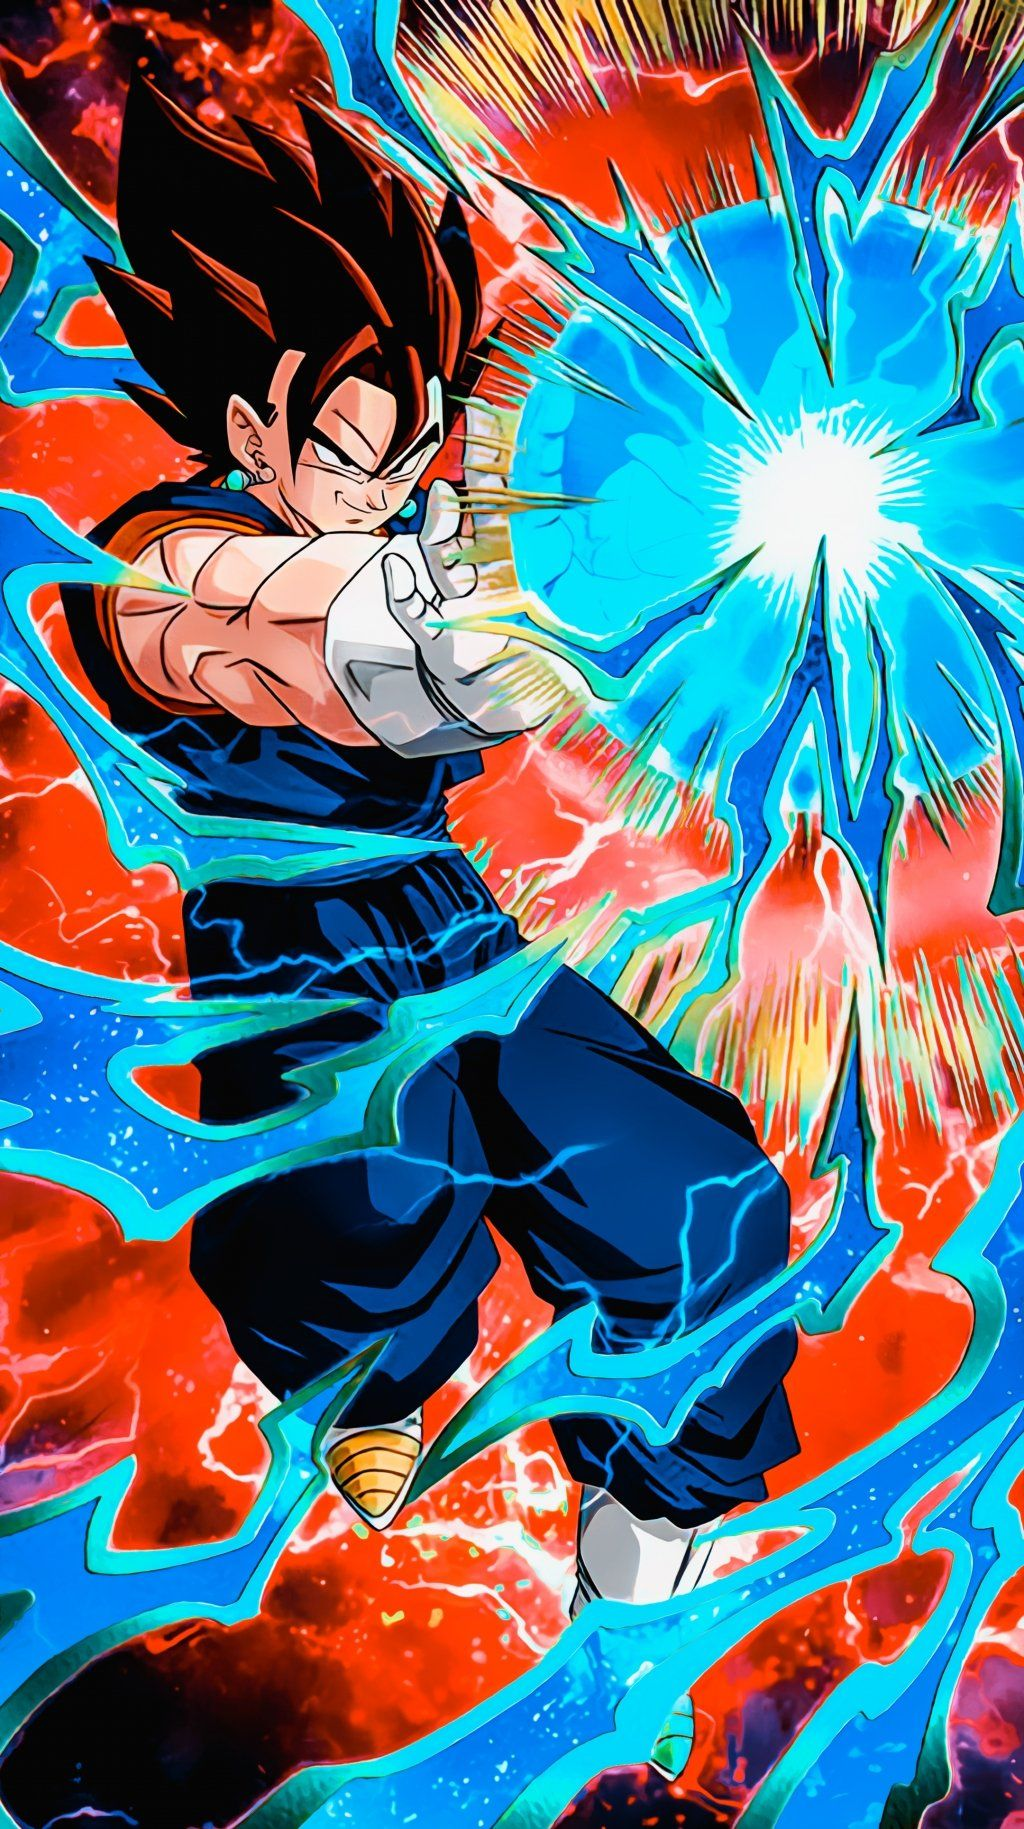 Top 8 Dbz Super Vegetto 4k Vertical Wallpapers In 2020 Dragon Ball Wallpapers Dragon Ball Super Wallpapers Anime Dragon Ball Super